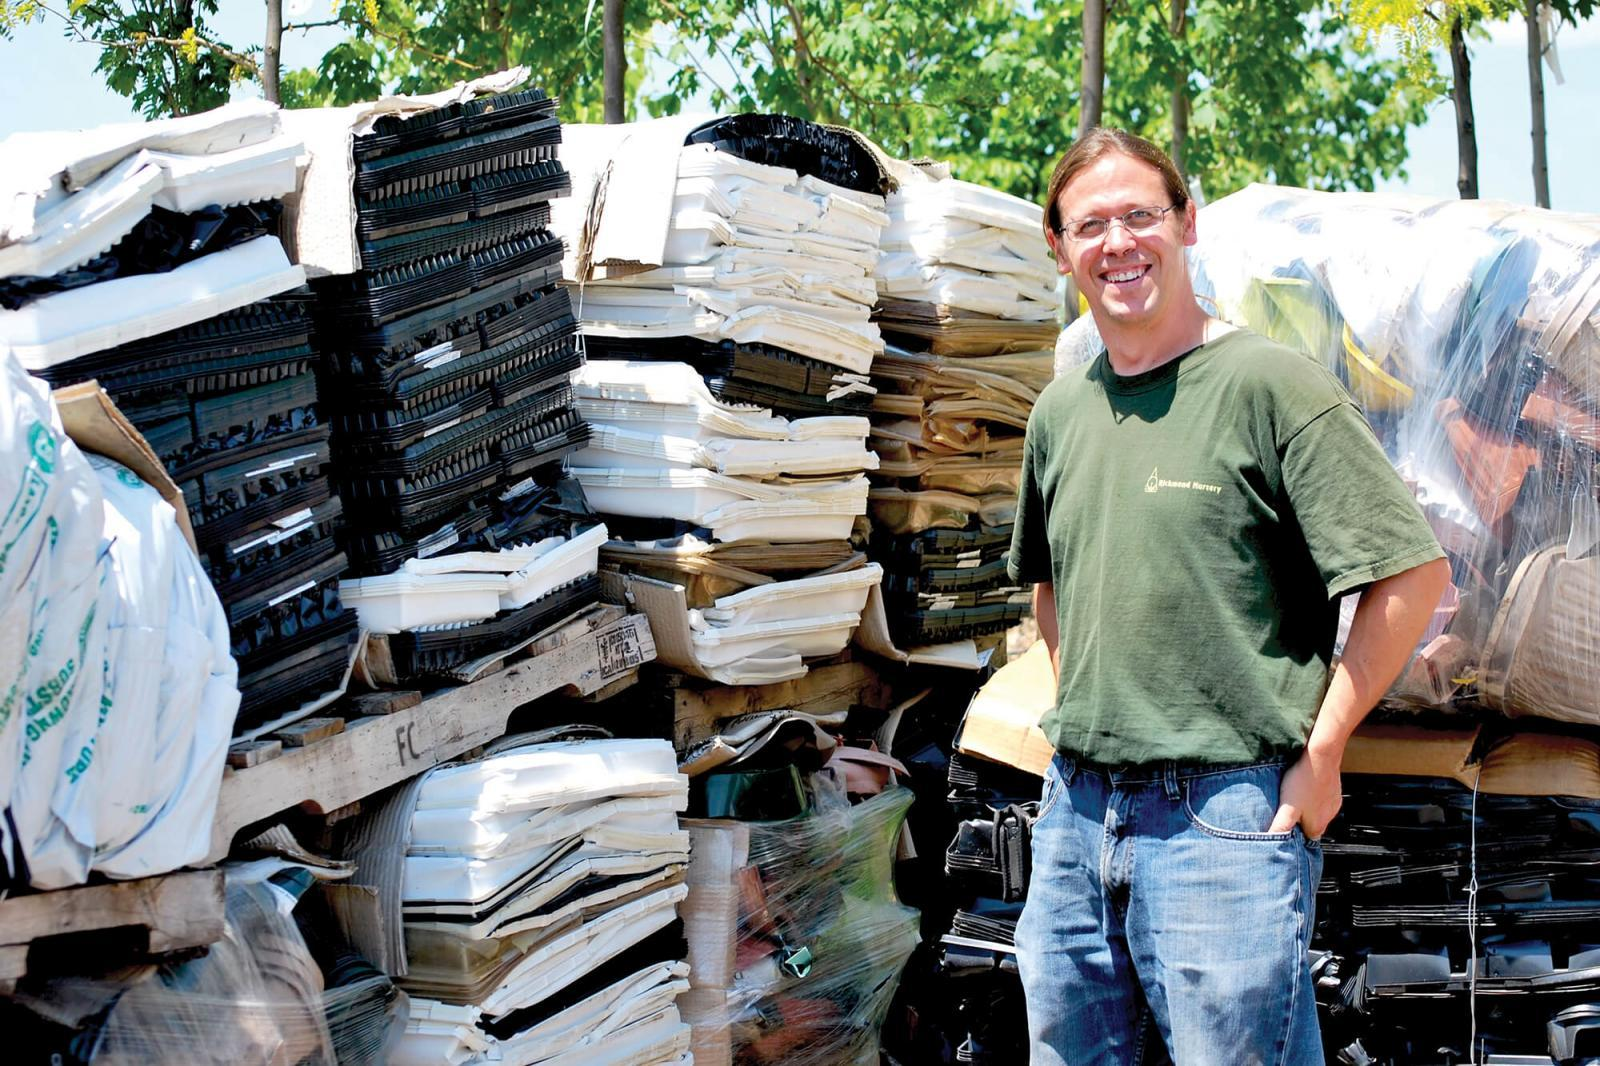 Peter Rofner of Richmond Nursery doesn't just talk about helping the environment.